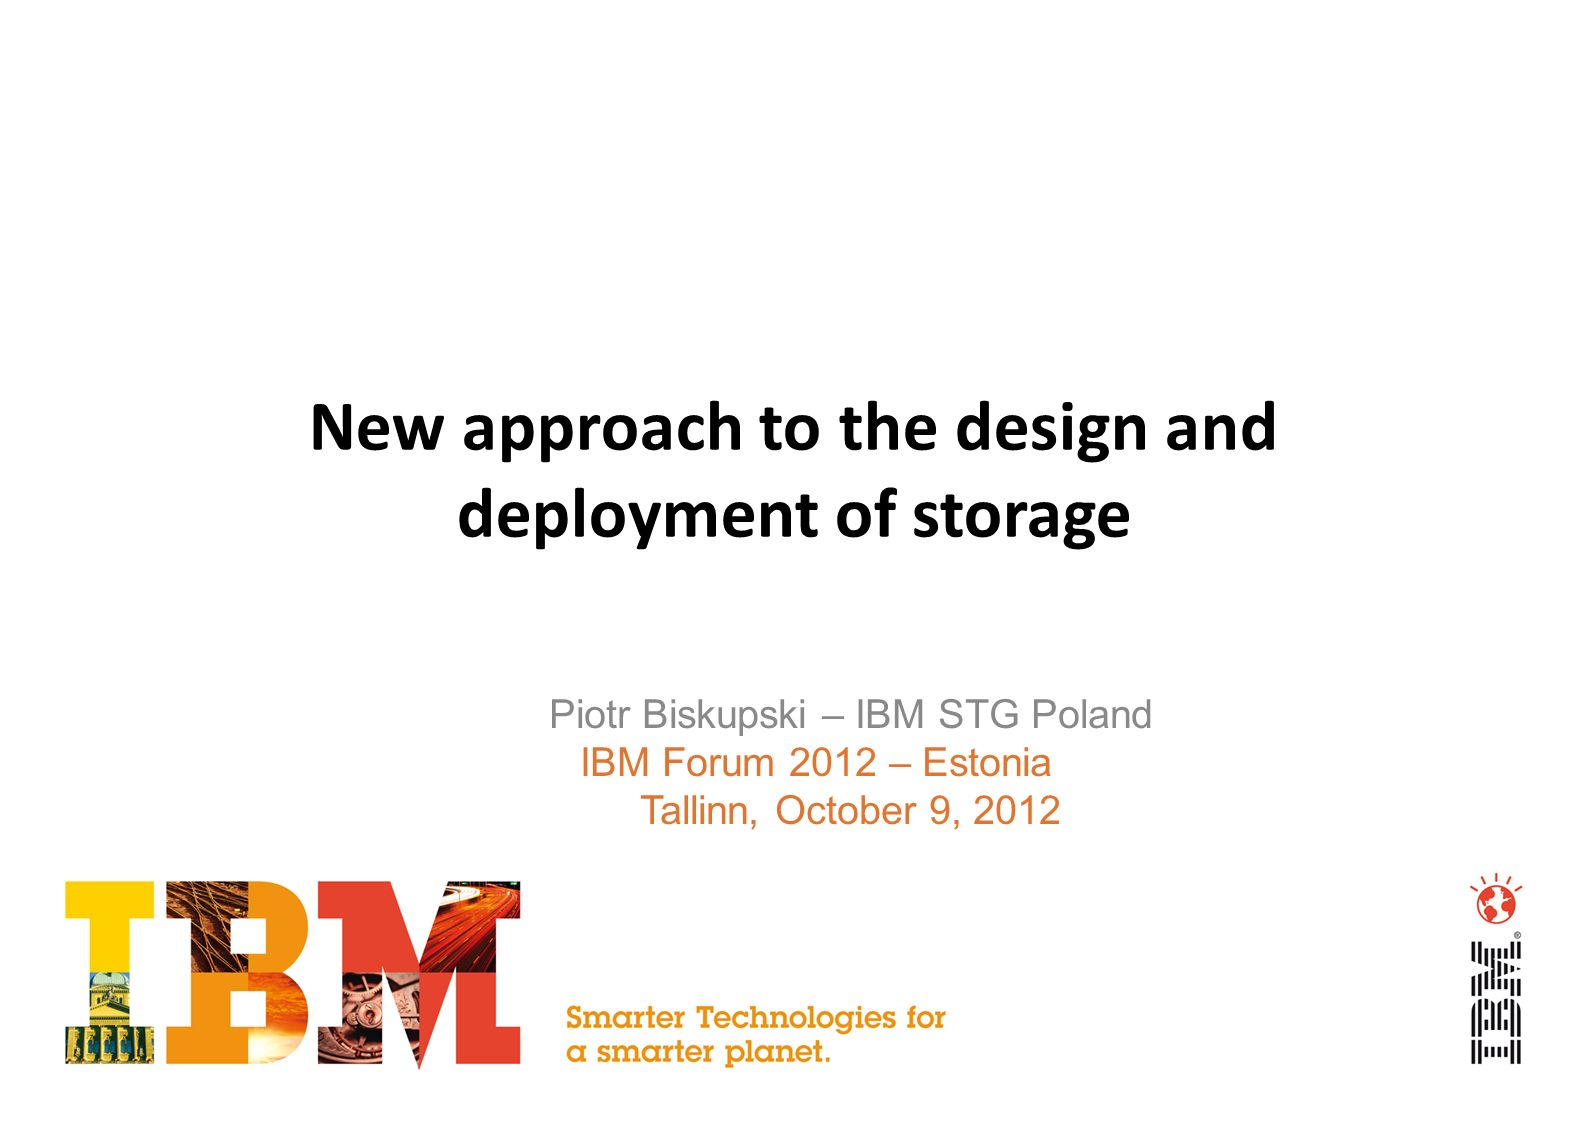 New approach to the design and deployment of storage